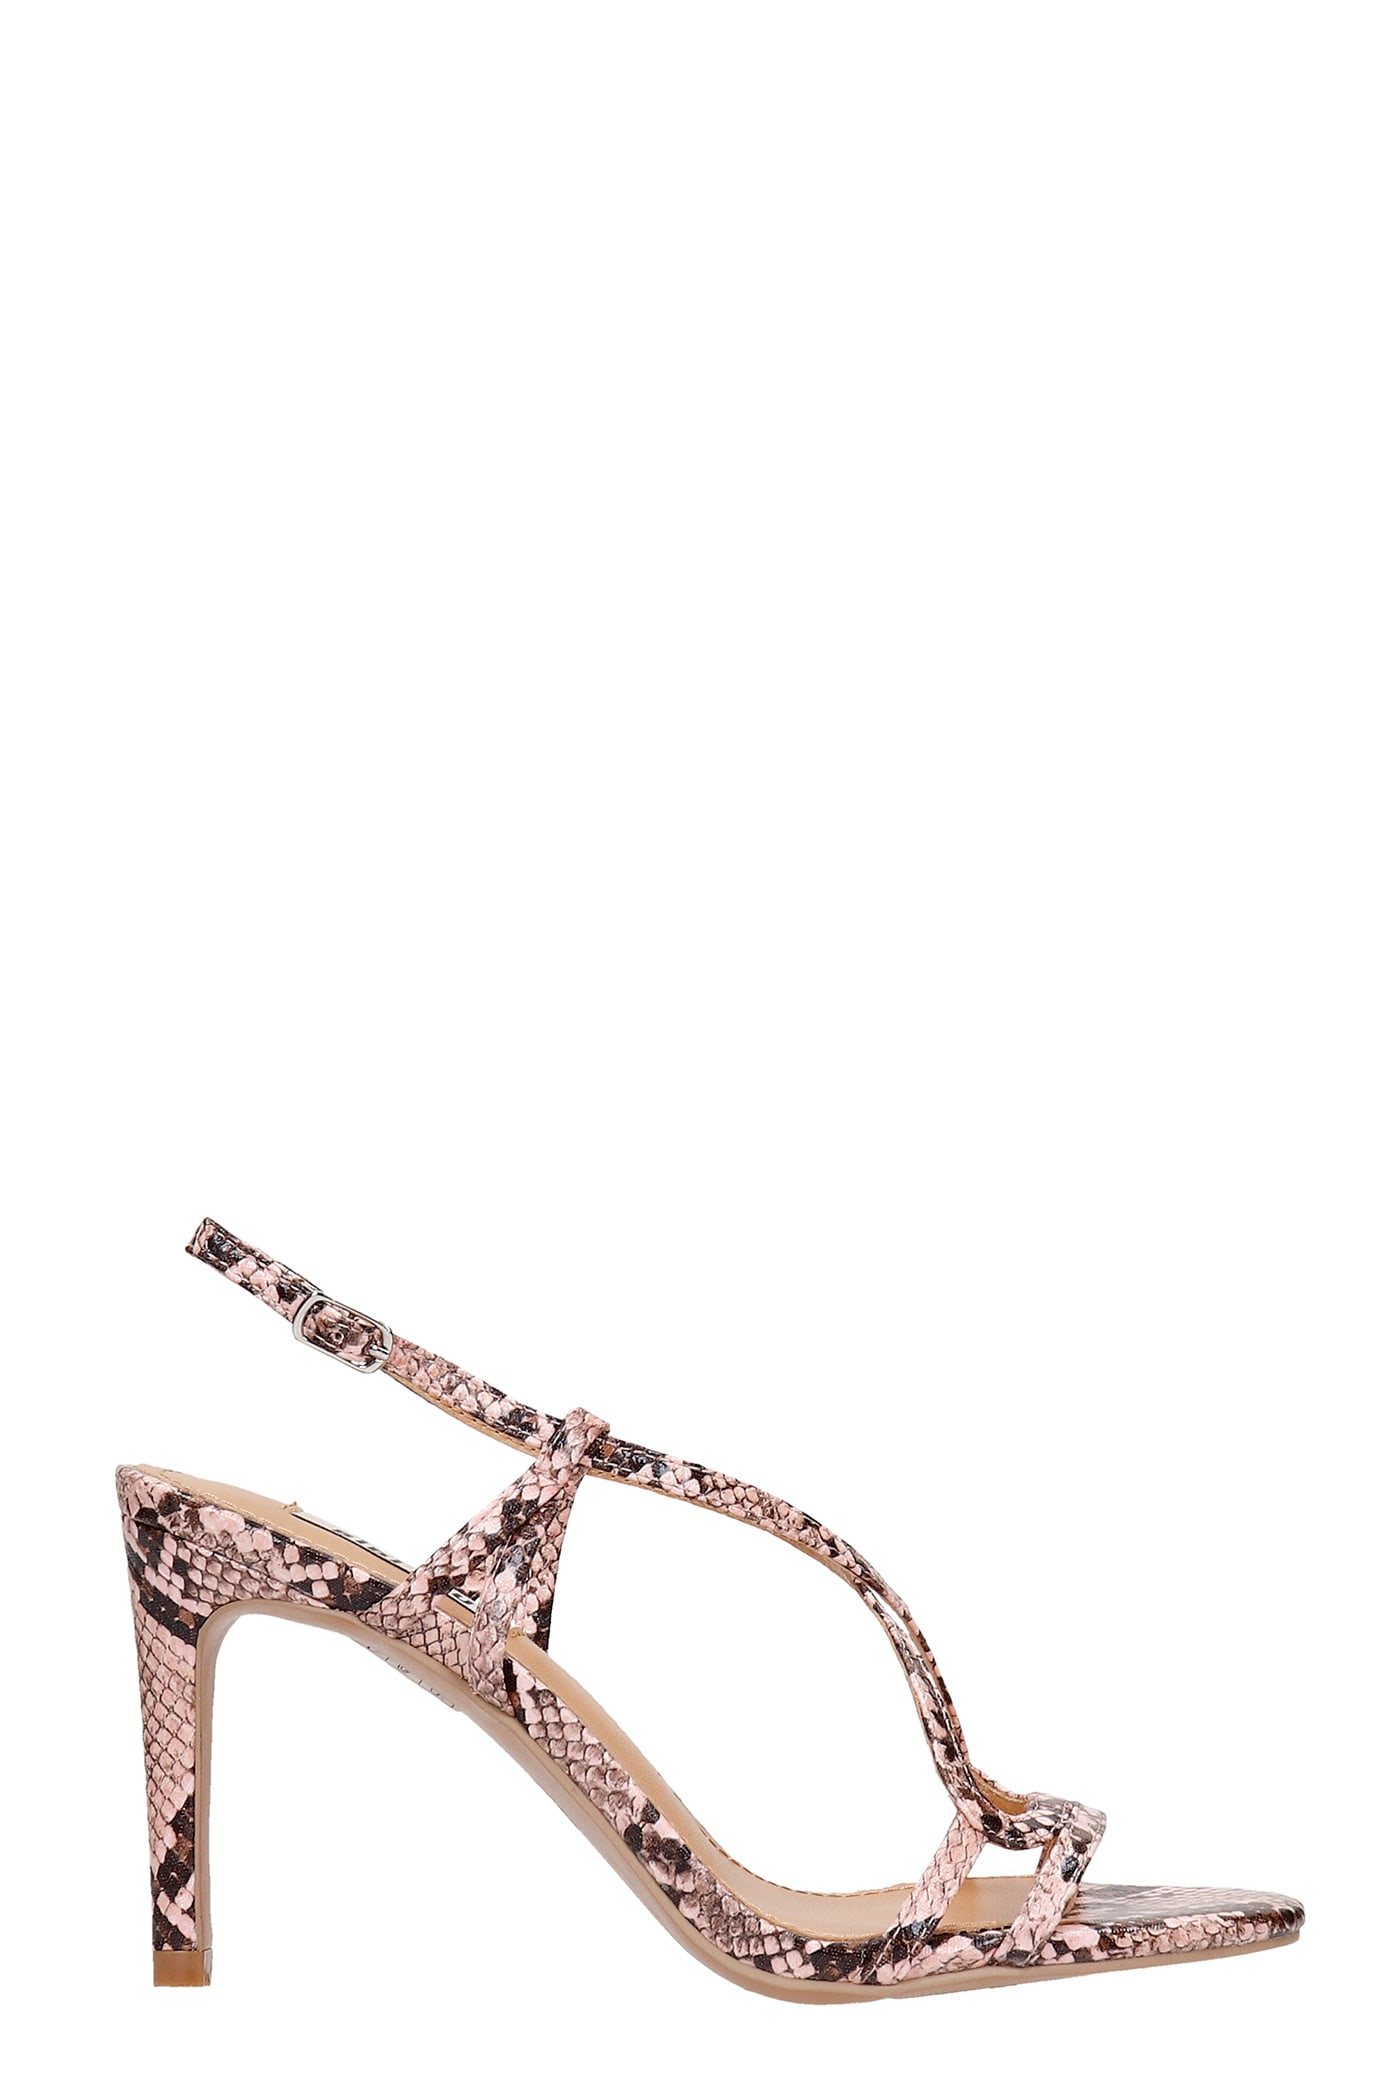 Sandals In Rose-pink Leather